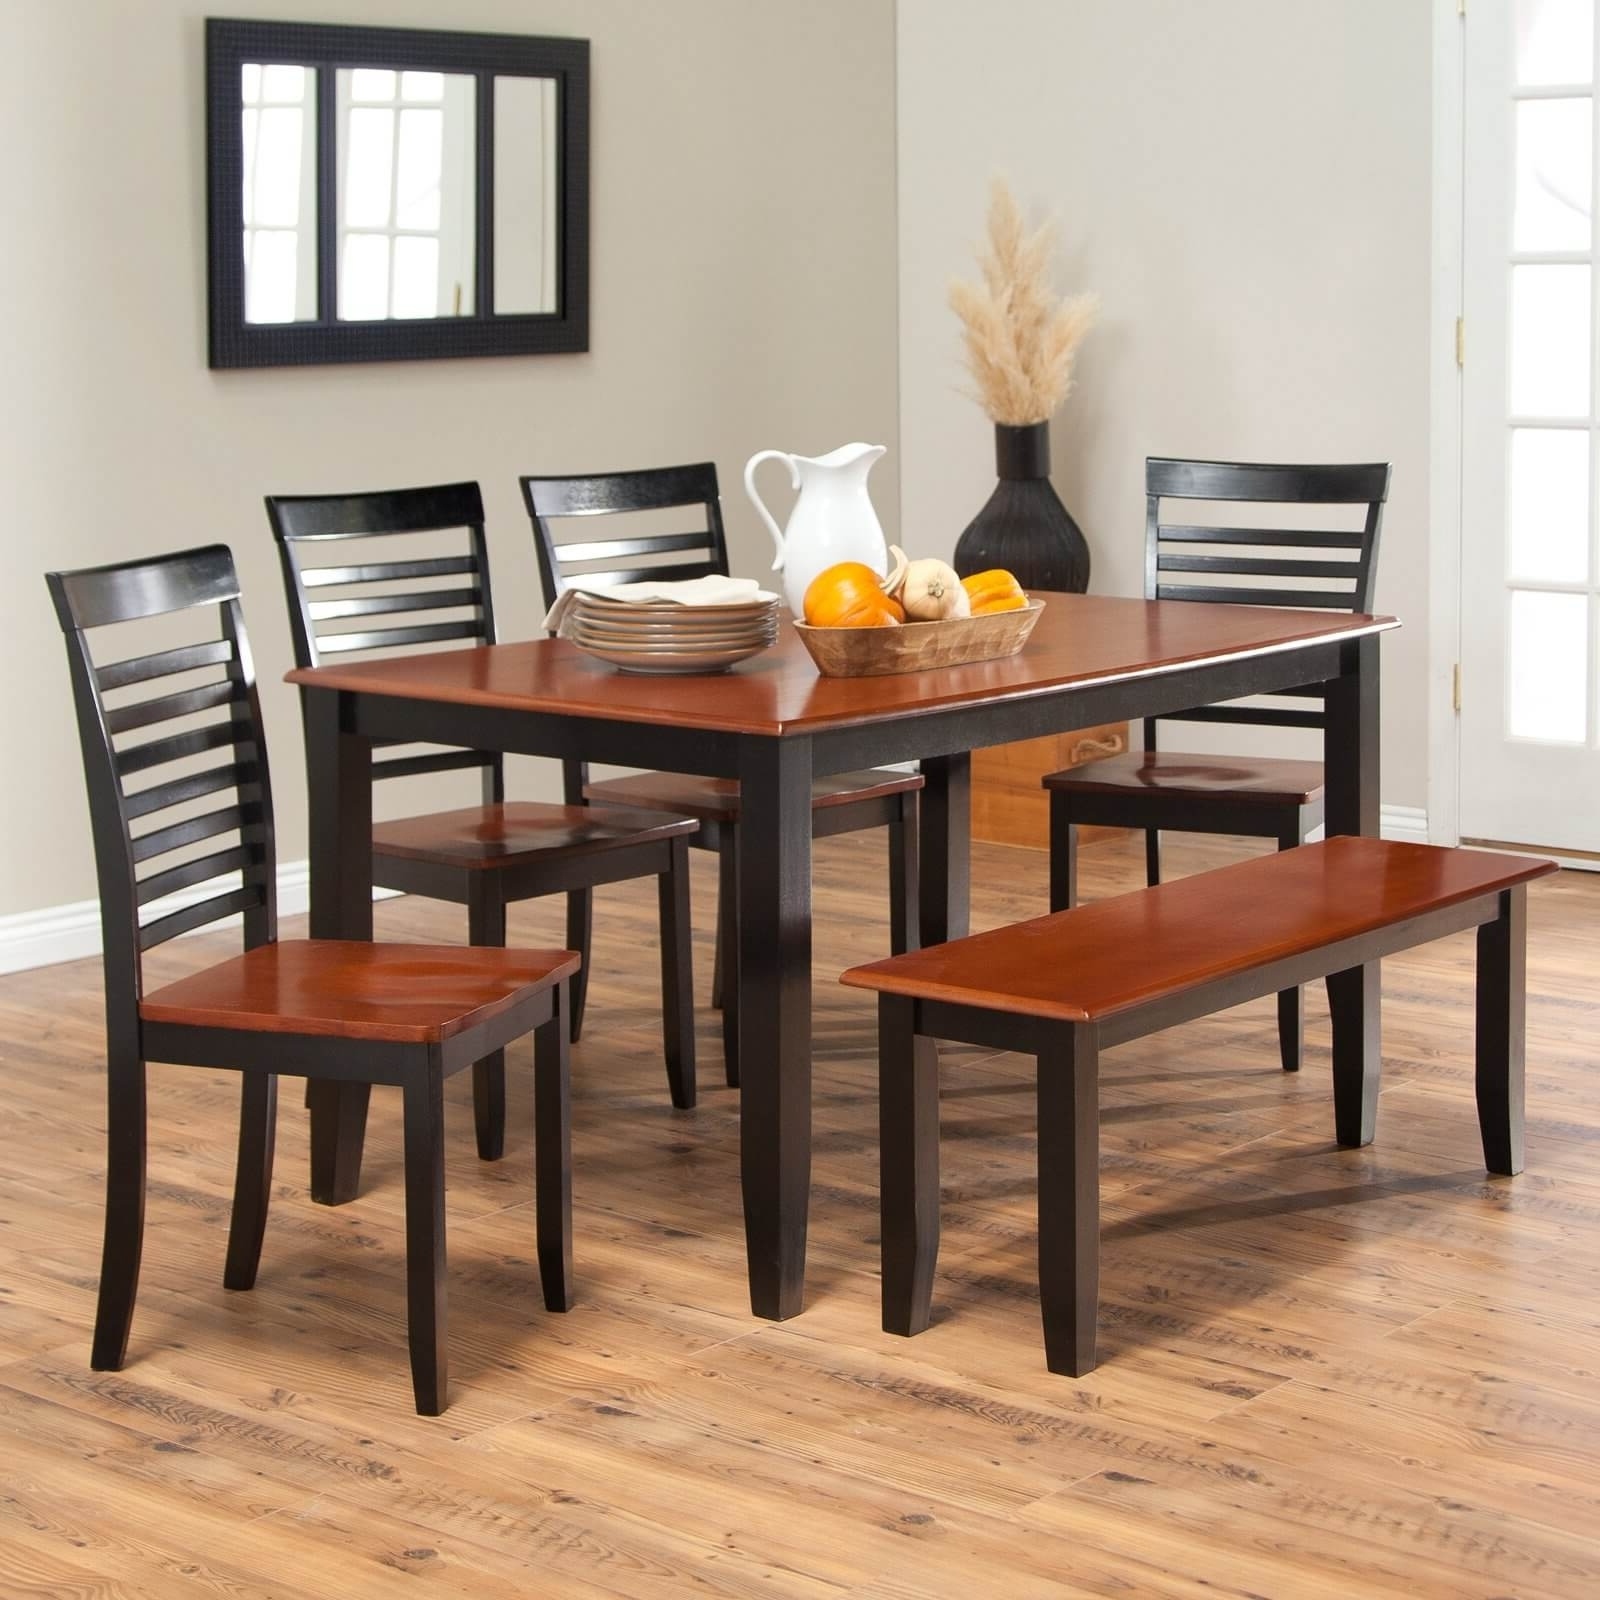 26 Dining Room Sets (Big And Small) With Bench Seating (2018) regarding Most Current Cheap Dining Tables And Chairs